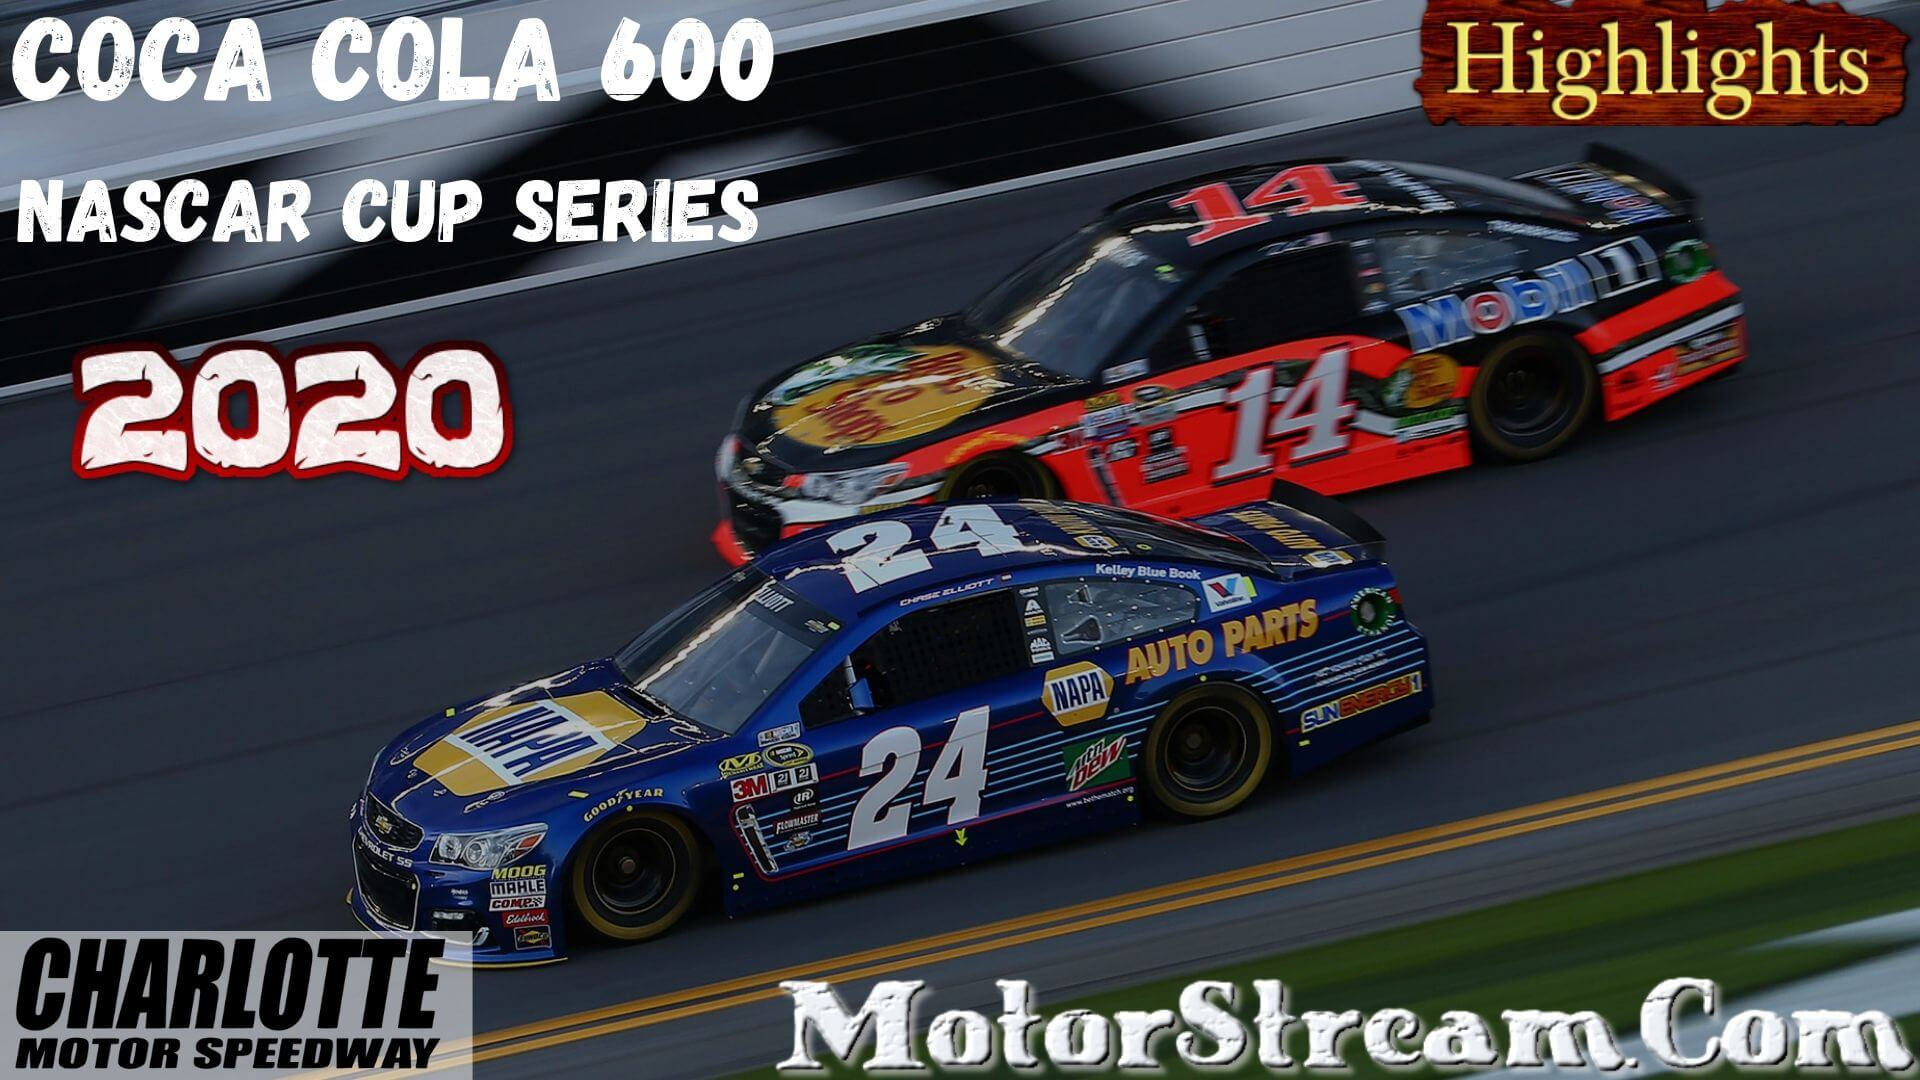 Coca Cola 600 Highlights 2020 Nascar Cup